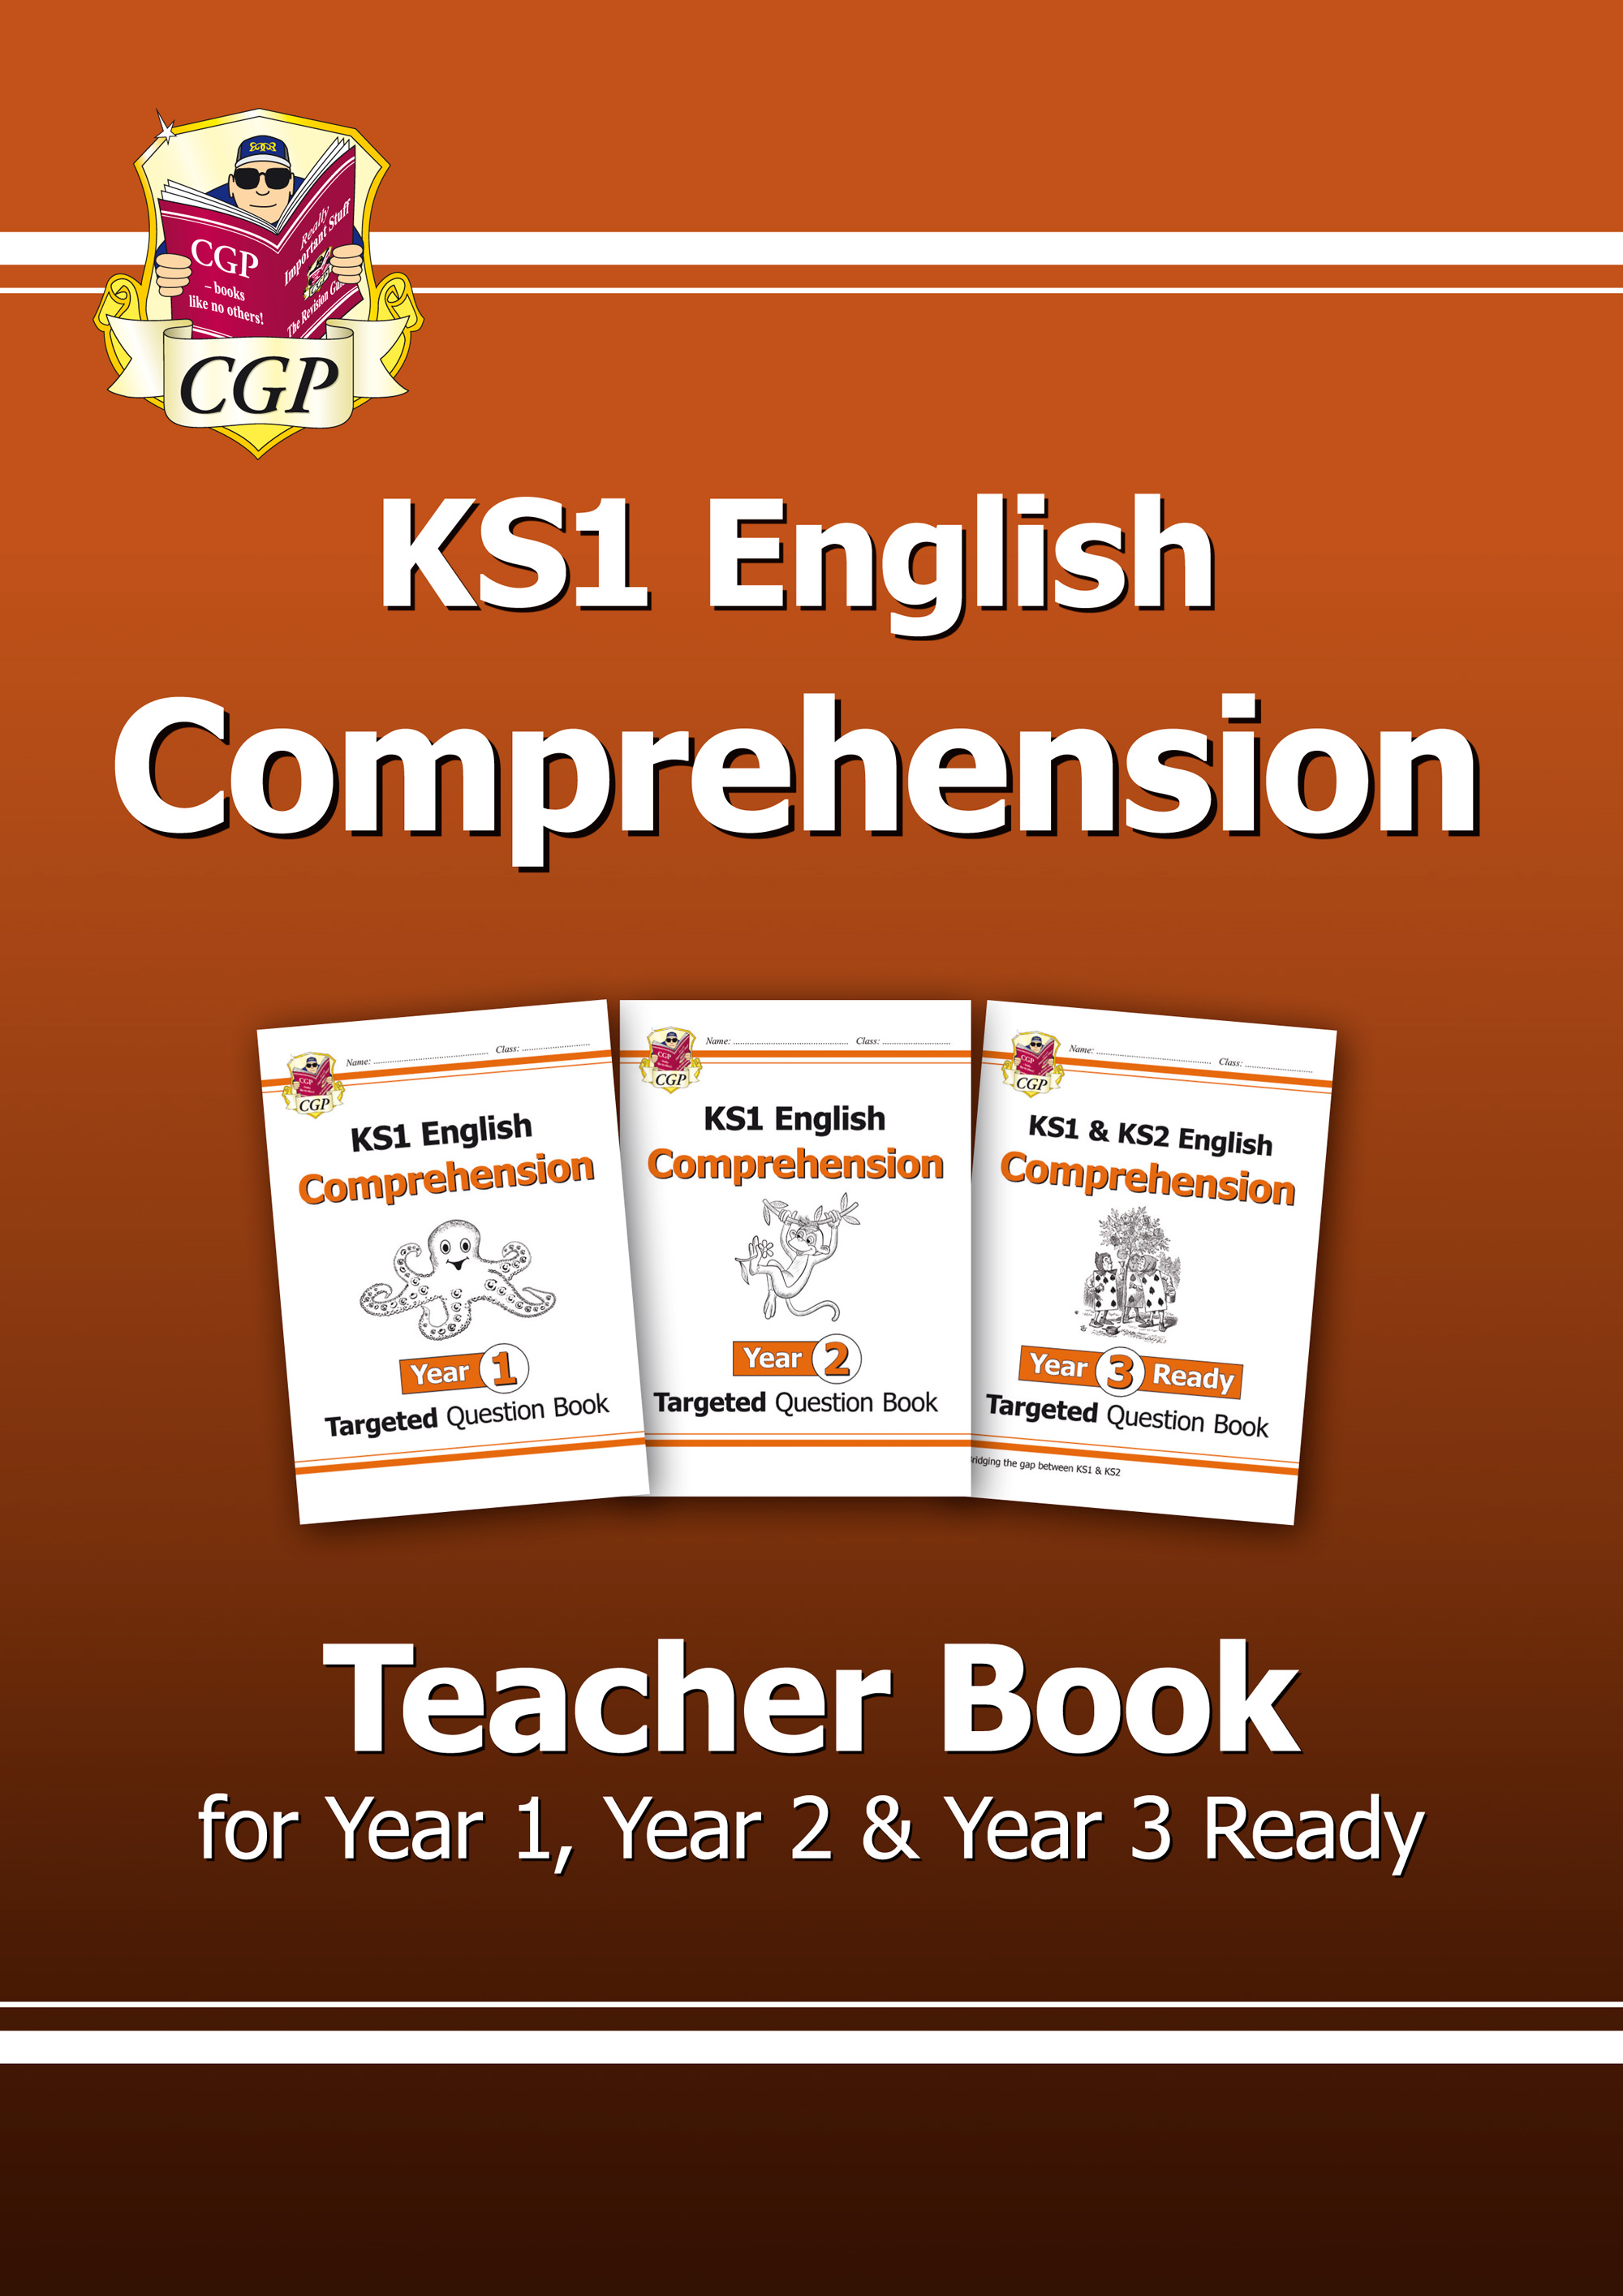 ECT11 - KS1 English Targeted Comprehension: Teacher Book for Year 1, Year 2 & Year 3 Ready